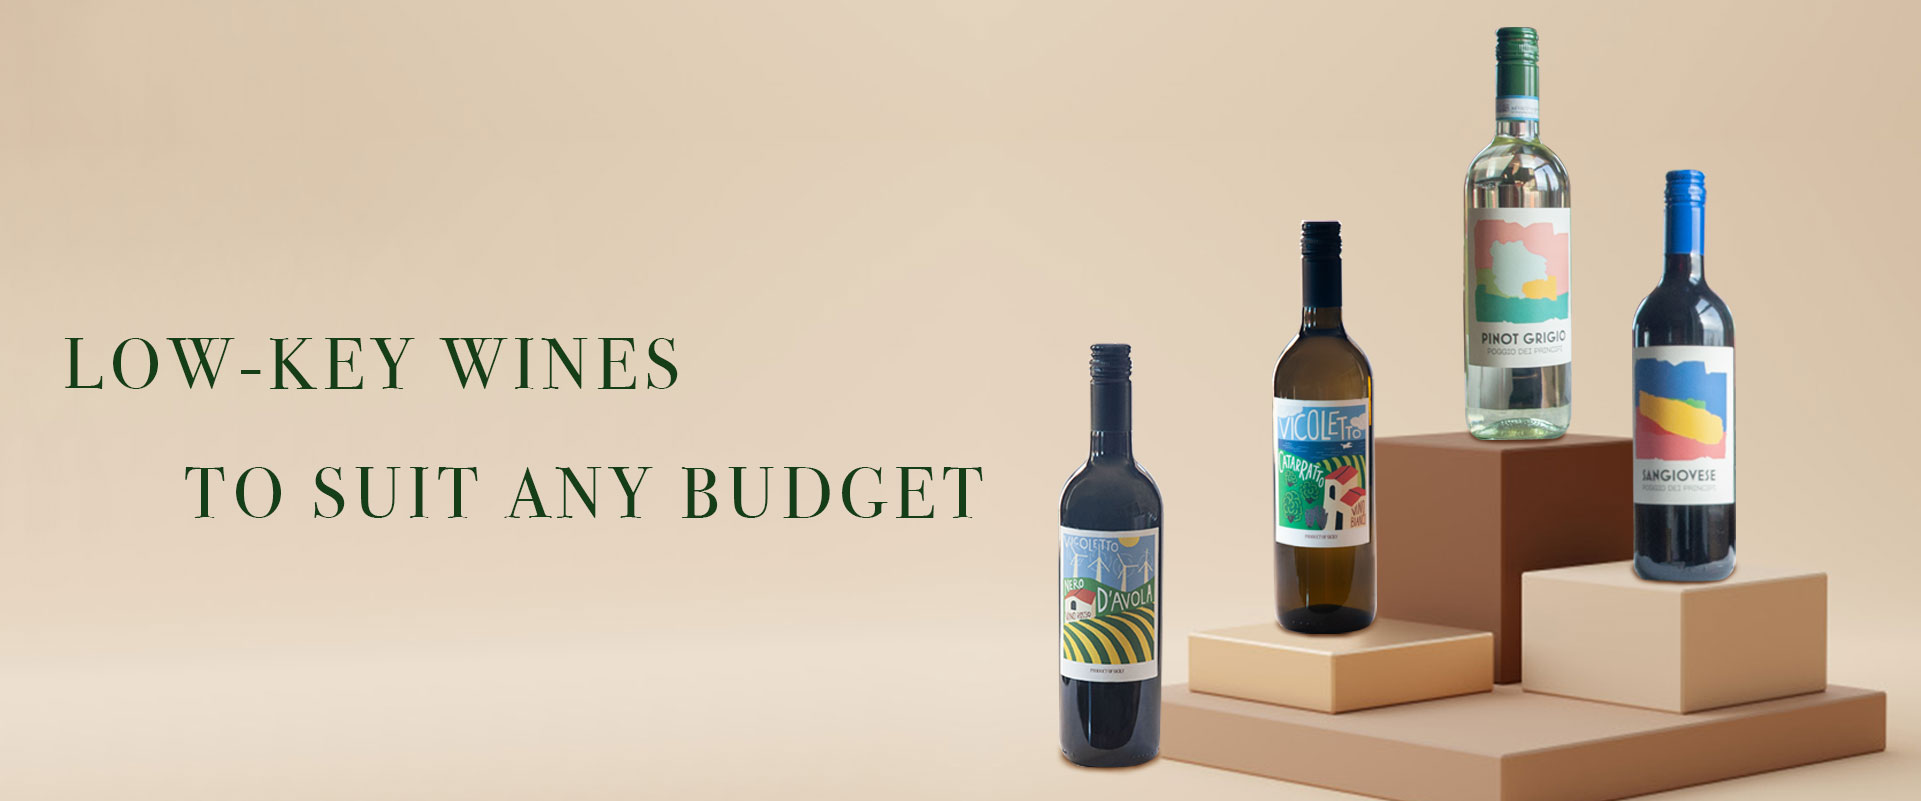 low-key-wines-Home-Page-Slider